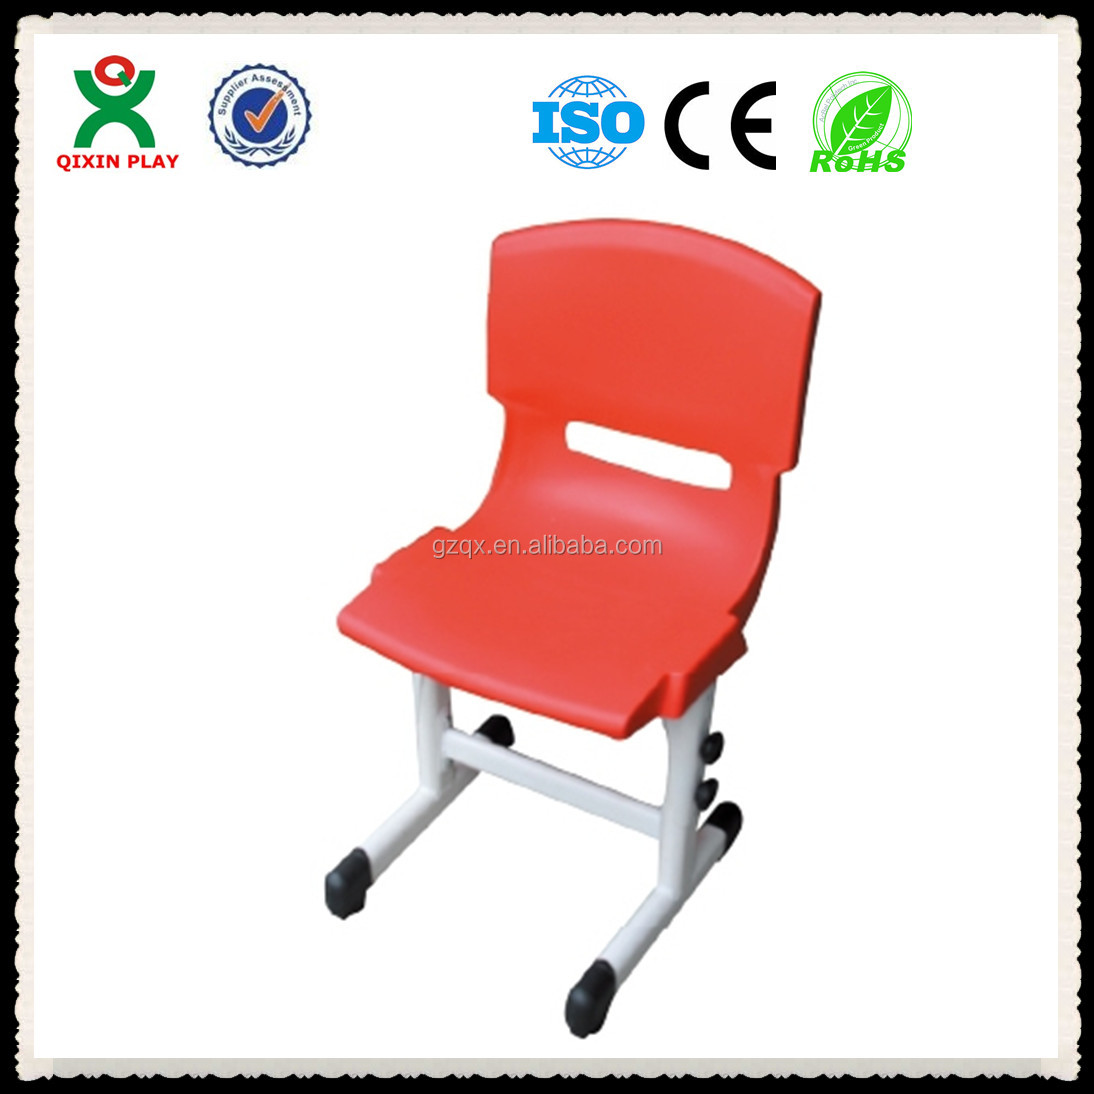 Useful Kids Furniture Plastic Chairs For Sale Qx195g Used